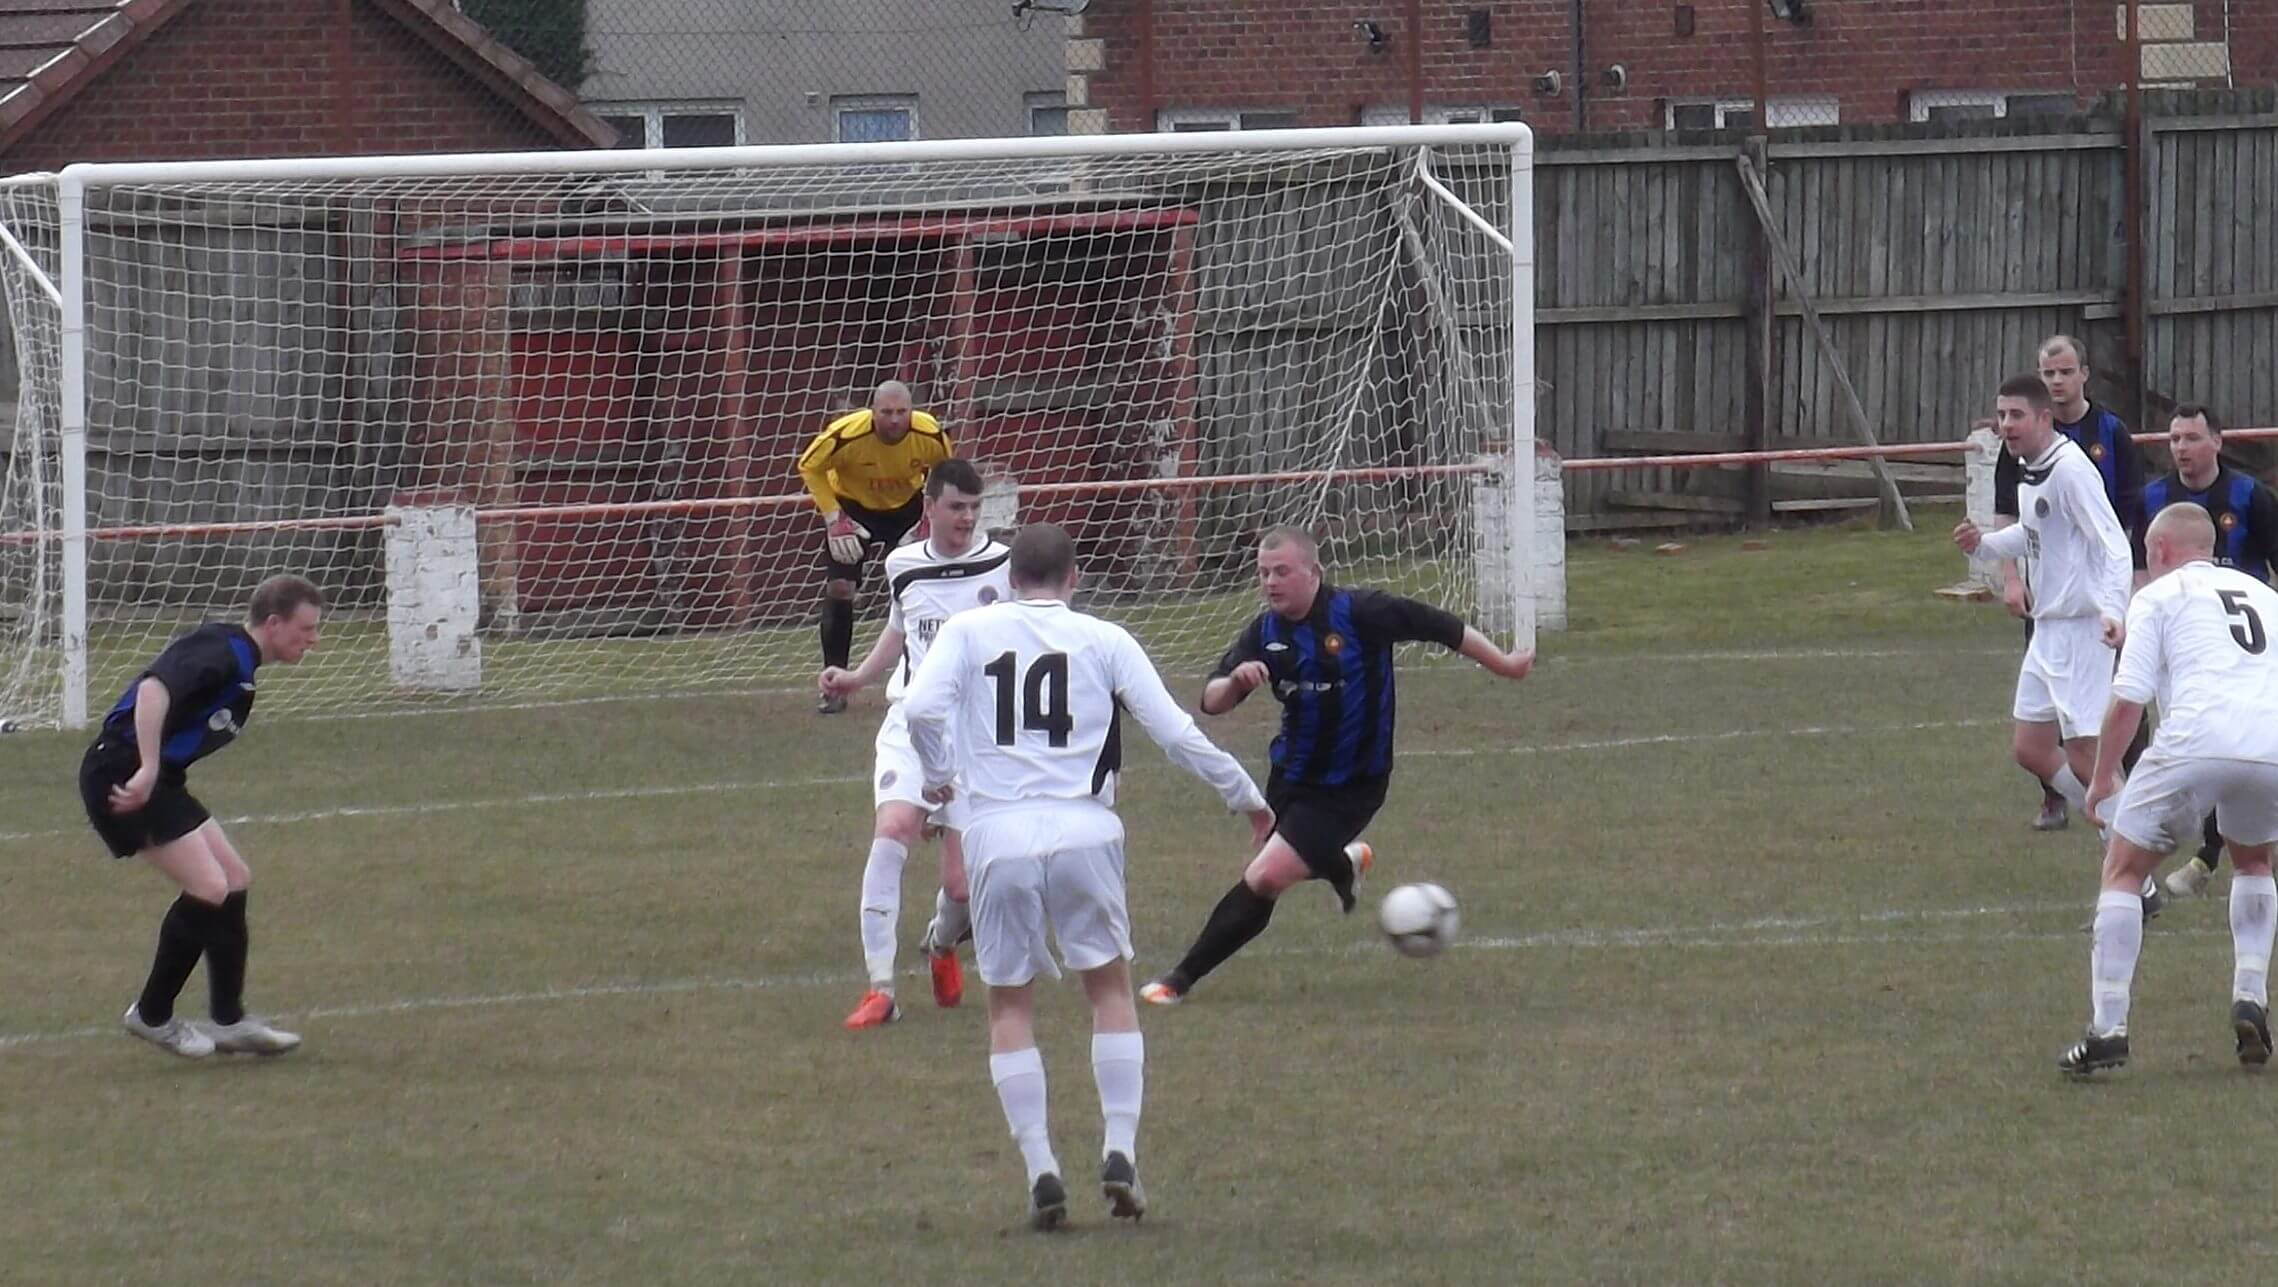 Steven McInall challenge in the second half